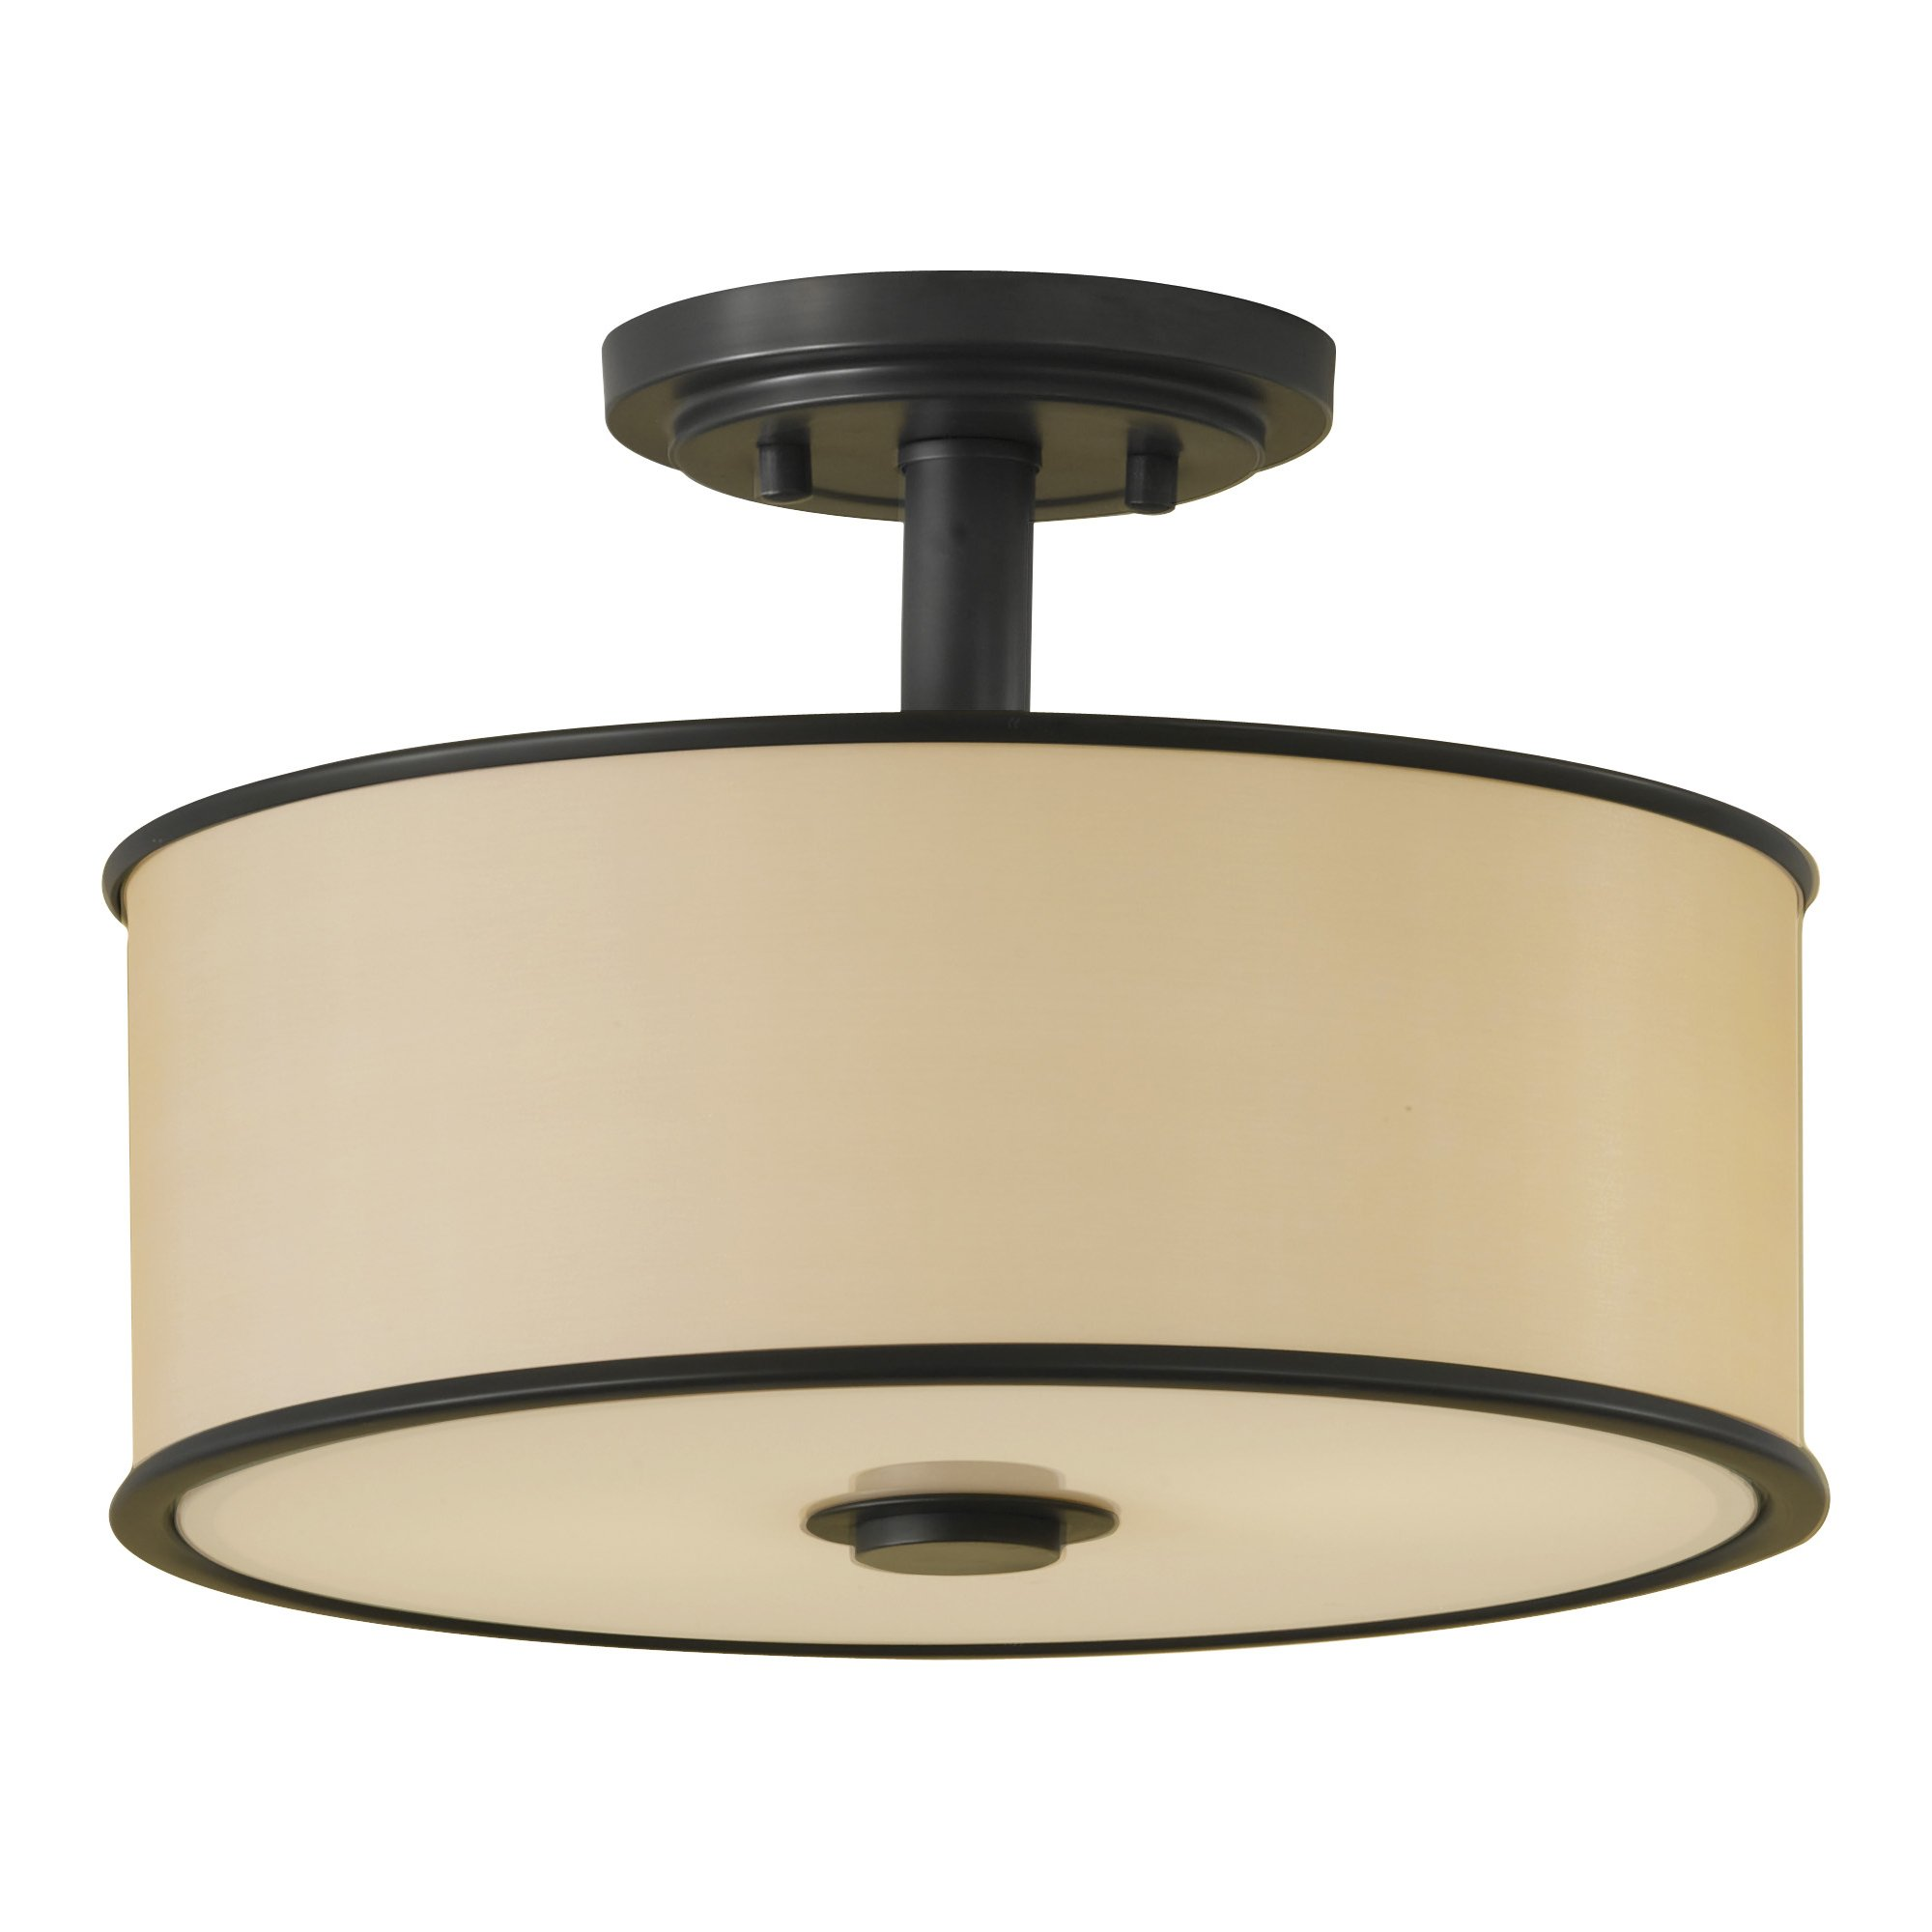 Breathtaking semi flush ceiling light for home lighting design with brushed nickel semi flush ceiling light